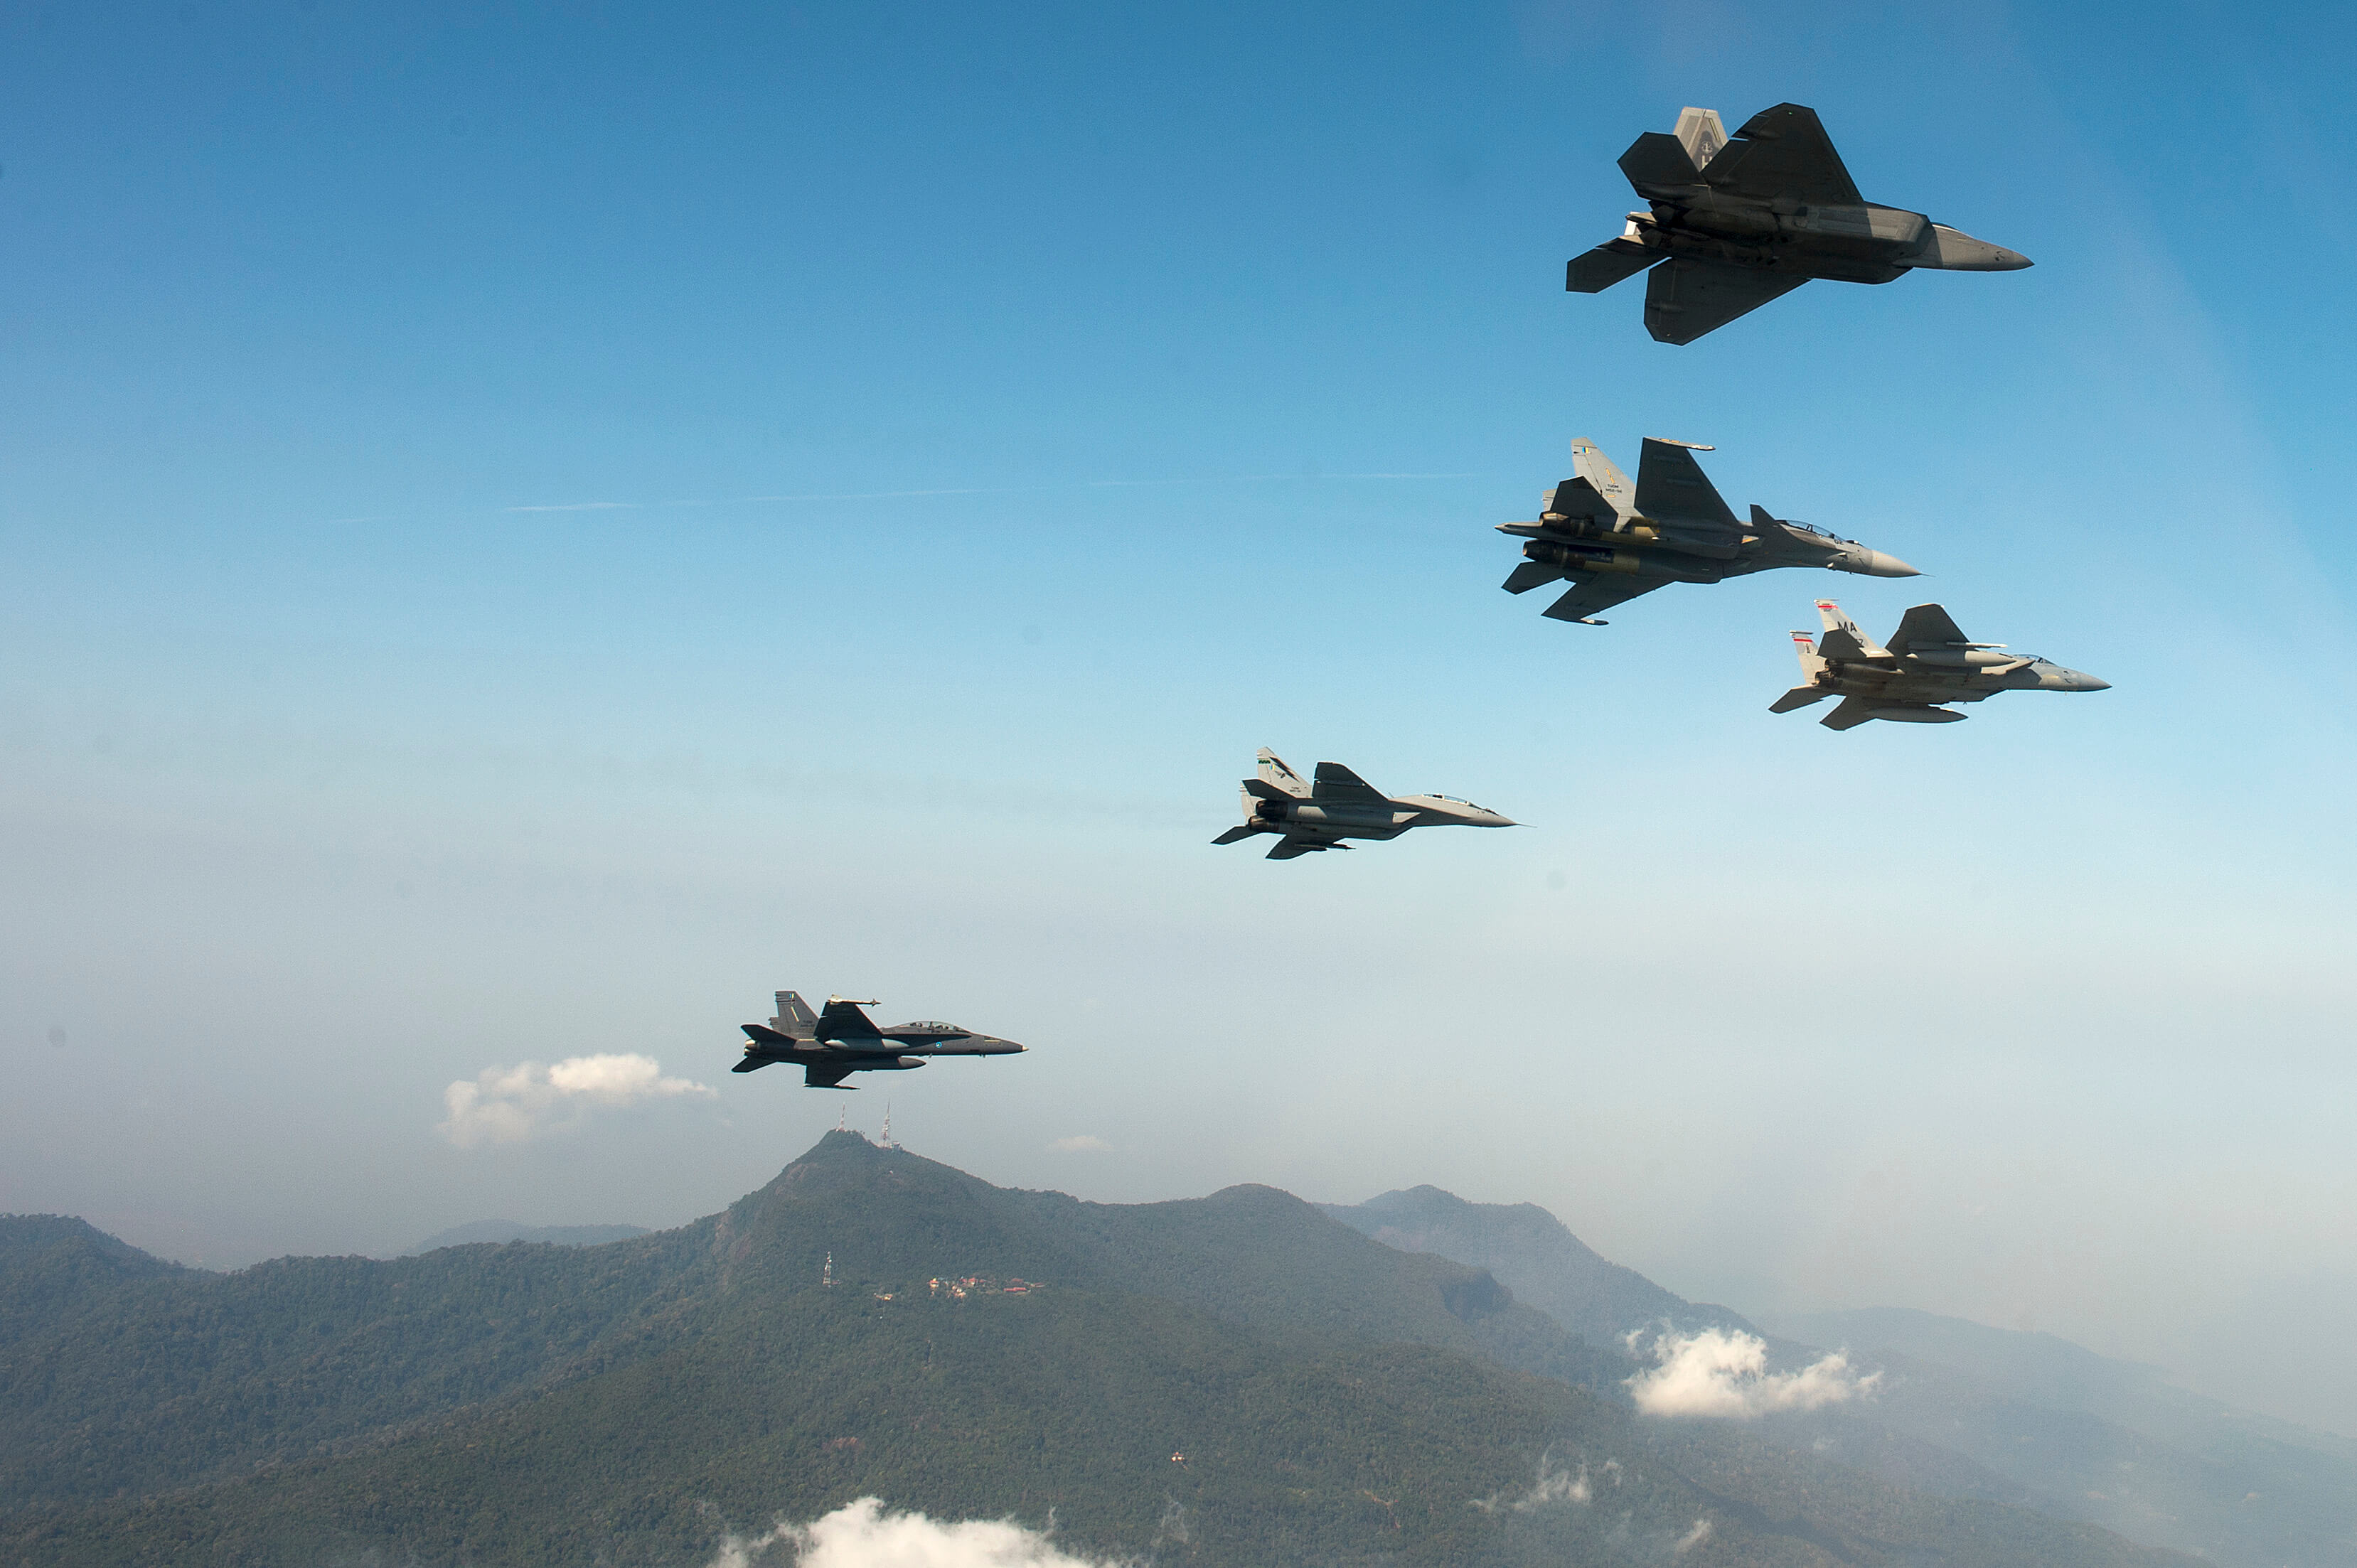 F-15 and F-22 aircraft during a training exercise in Malaysia, June 2014. © Massechusetts National Guard/Flickr